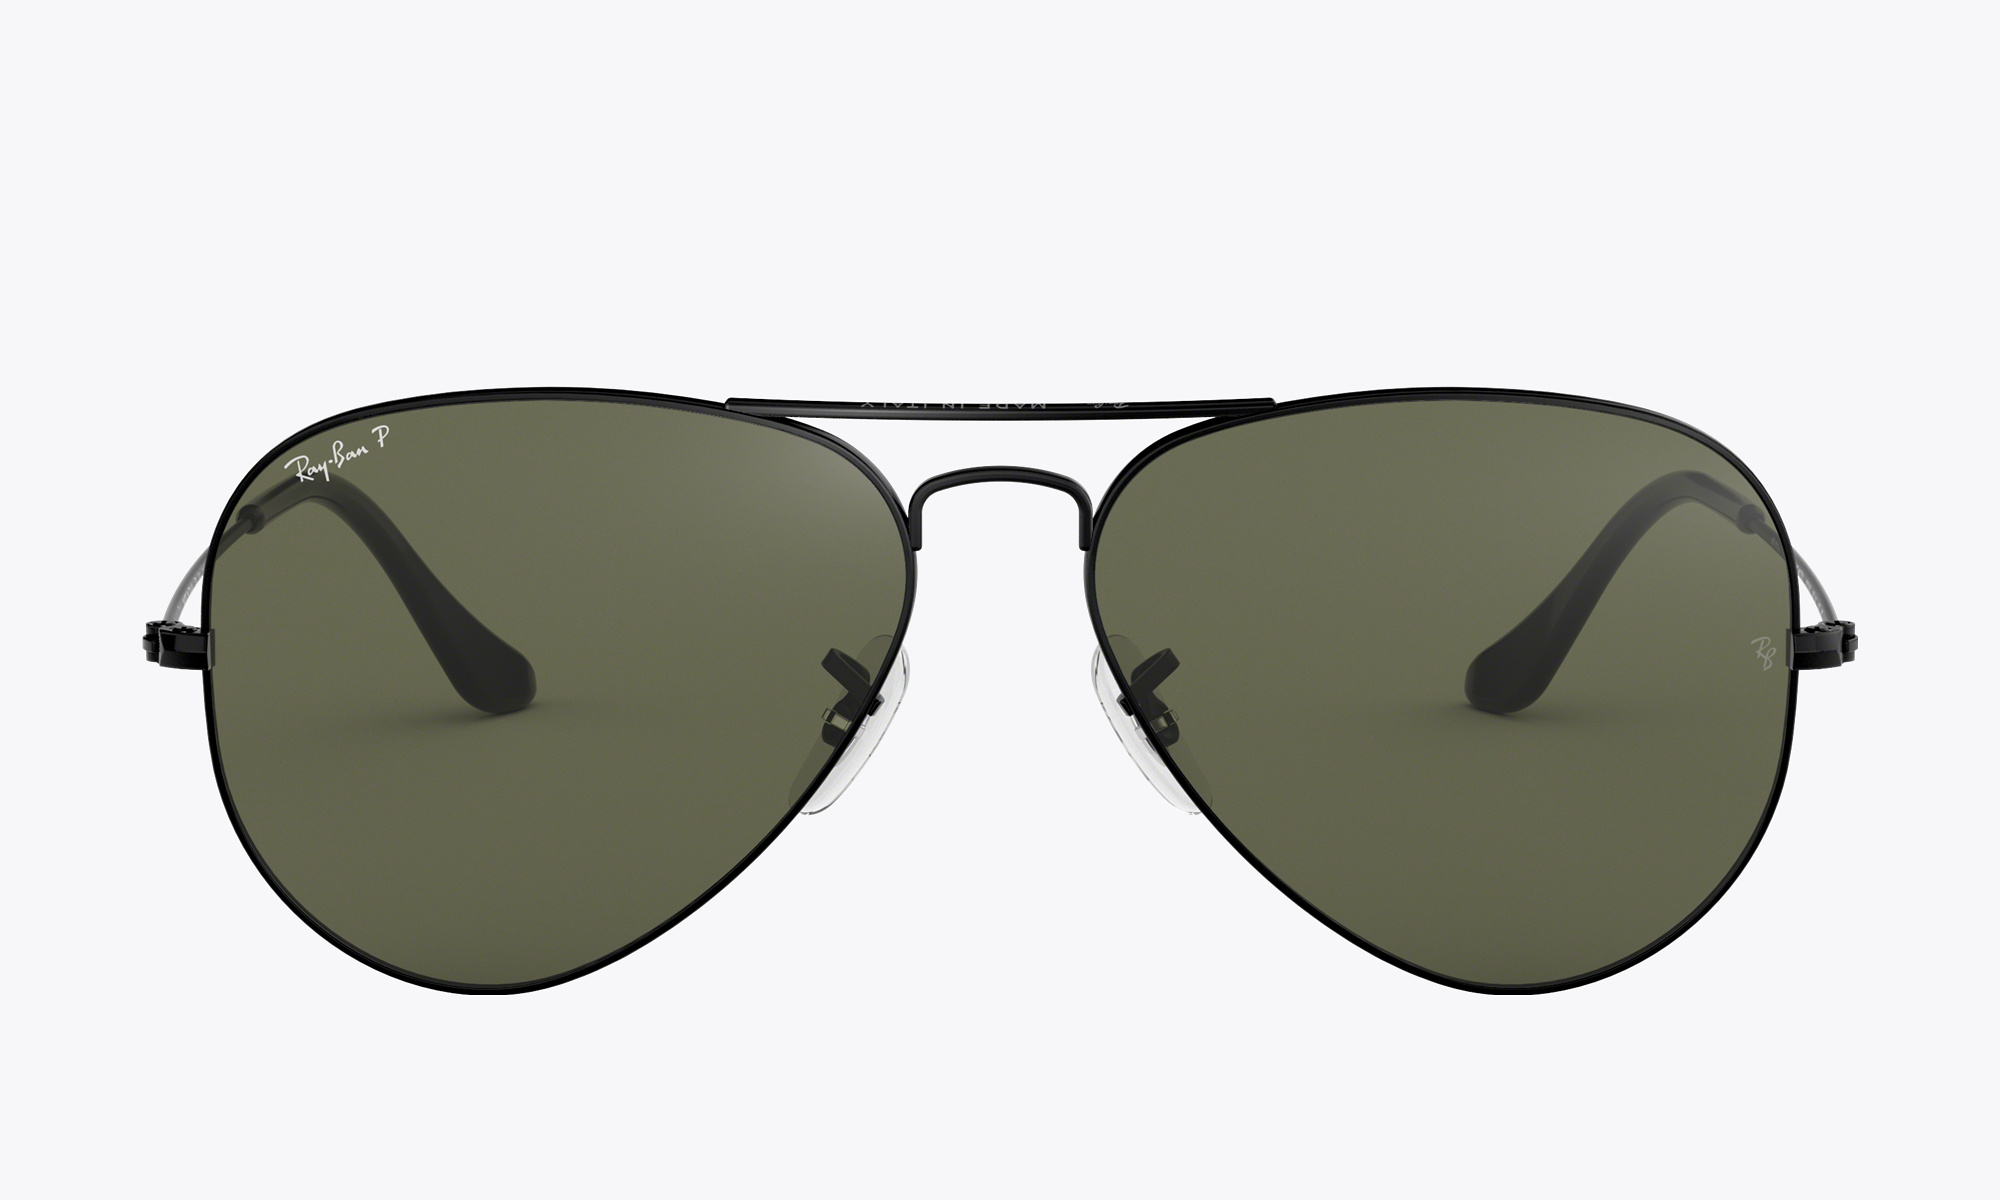 Image of Ray-Ban AVIATOR CLASSIC color Black